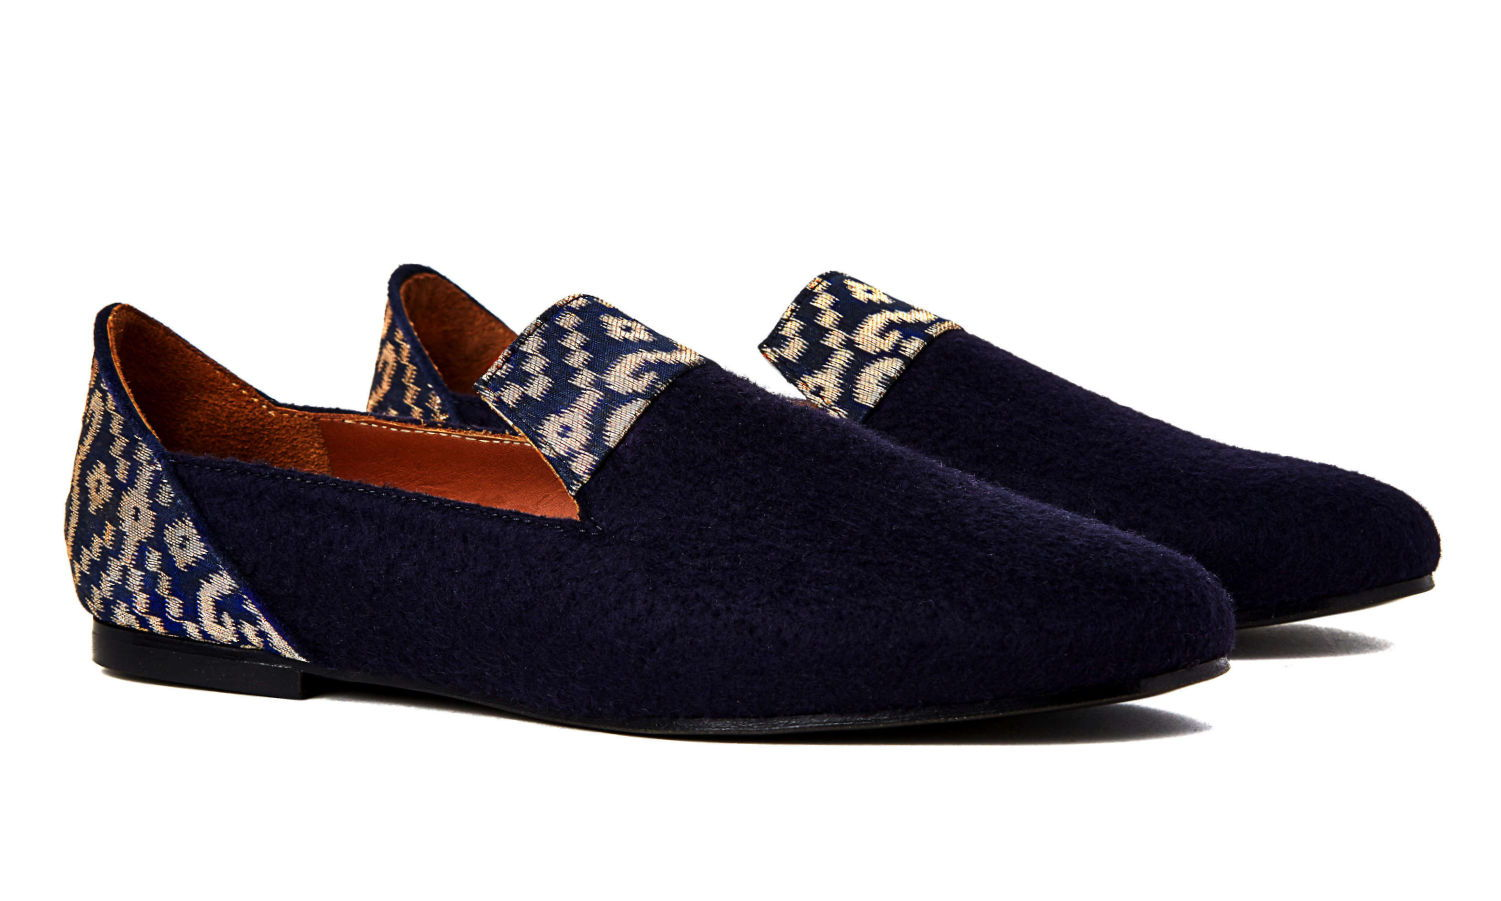 Boté A Mano Flat Loafer Shoes Women Uk Made in Itlay